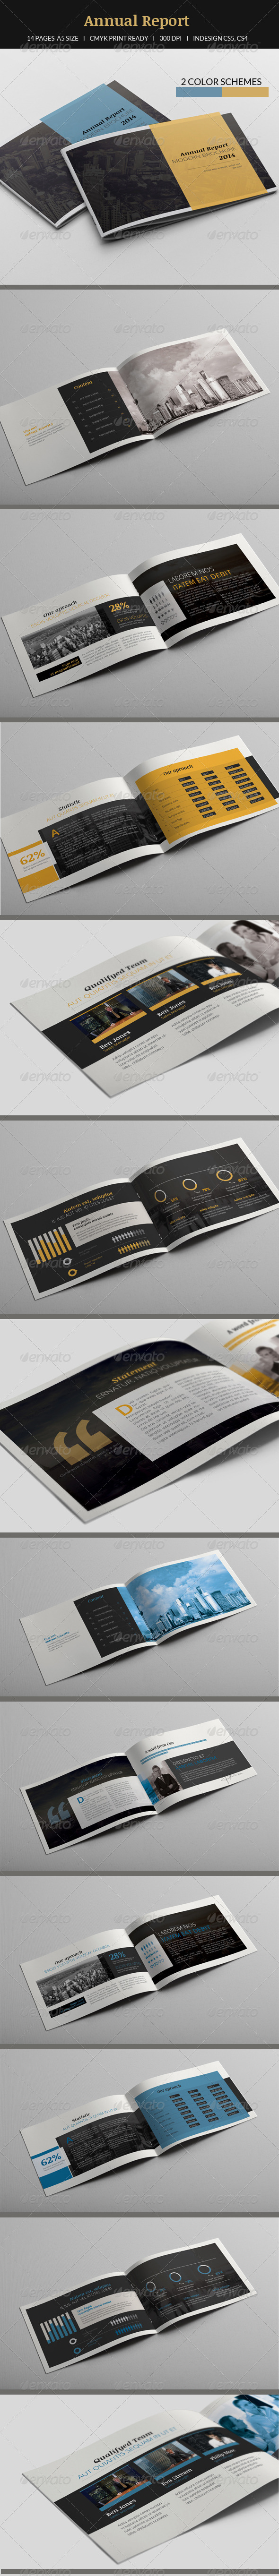 Annual Report A5 - Informational Brochures